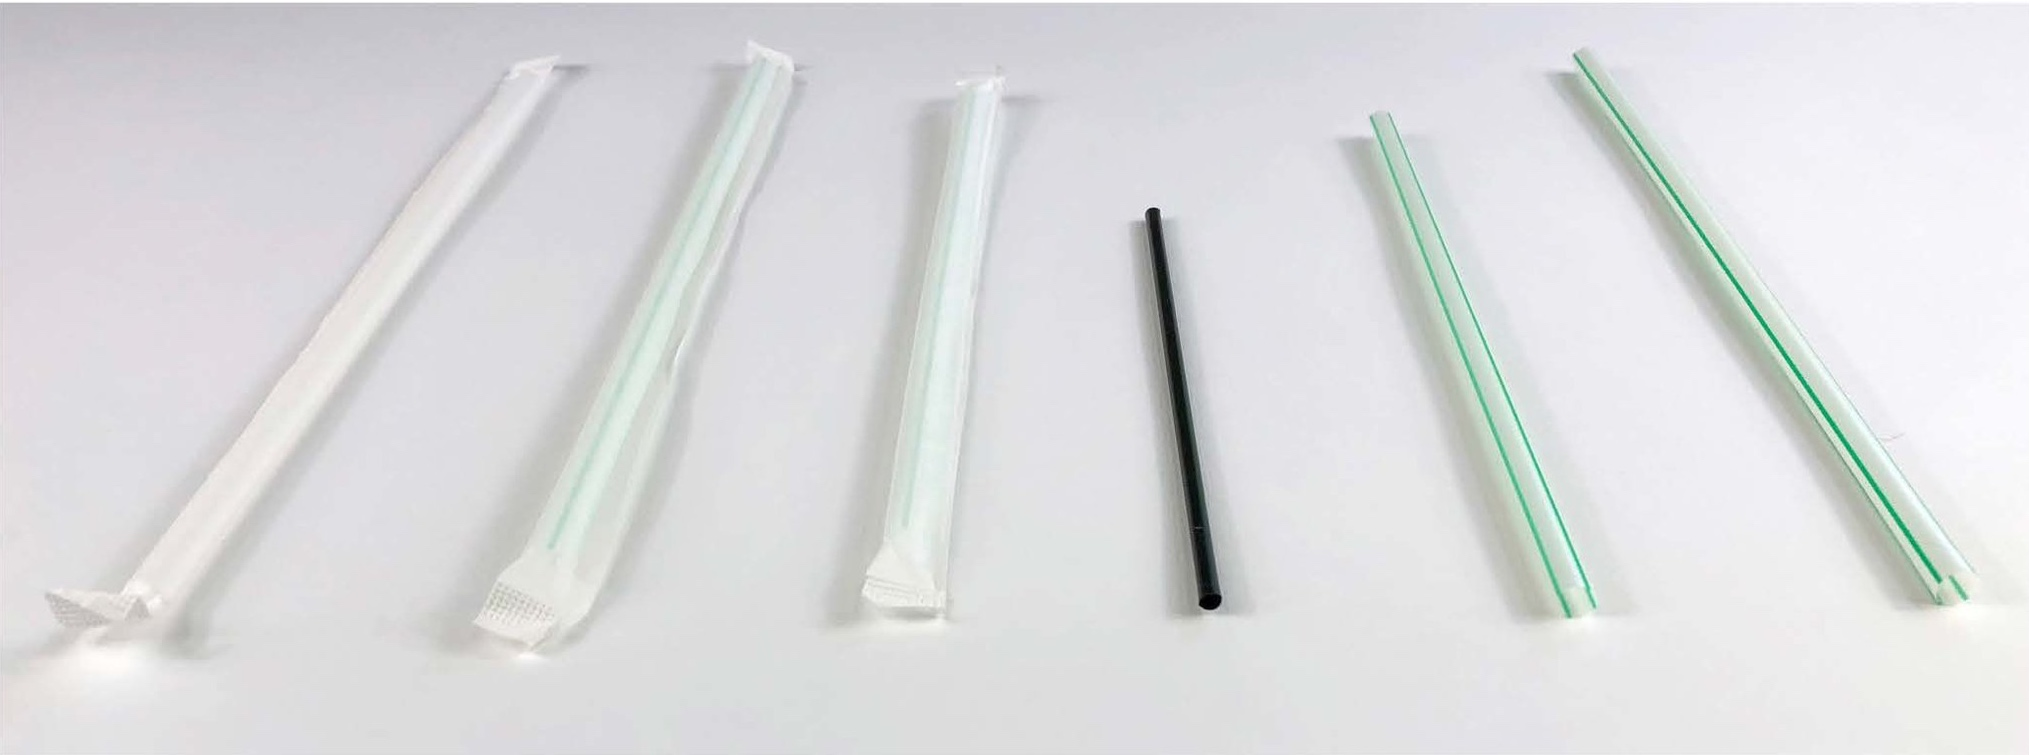 G2 Straw Picture